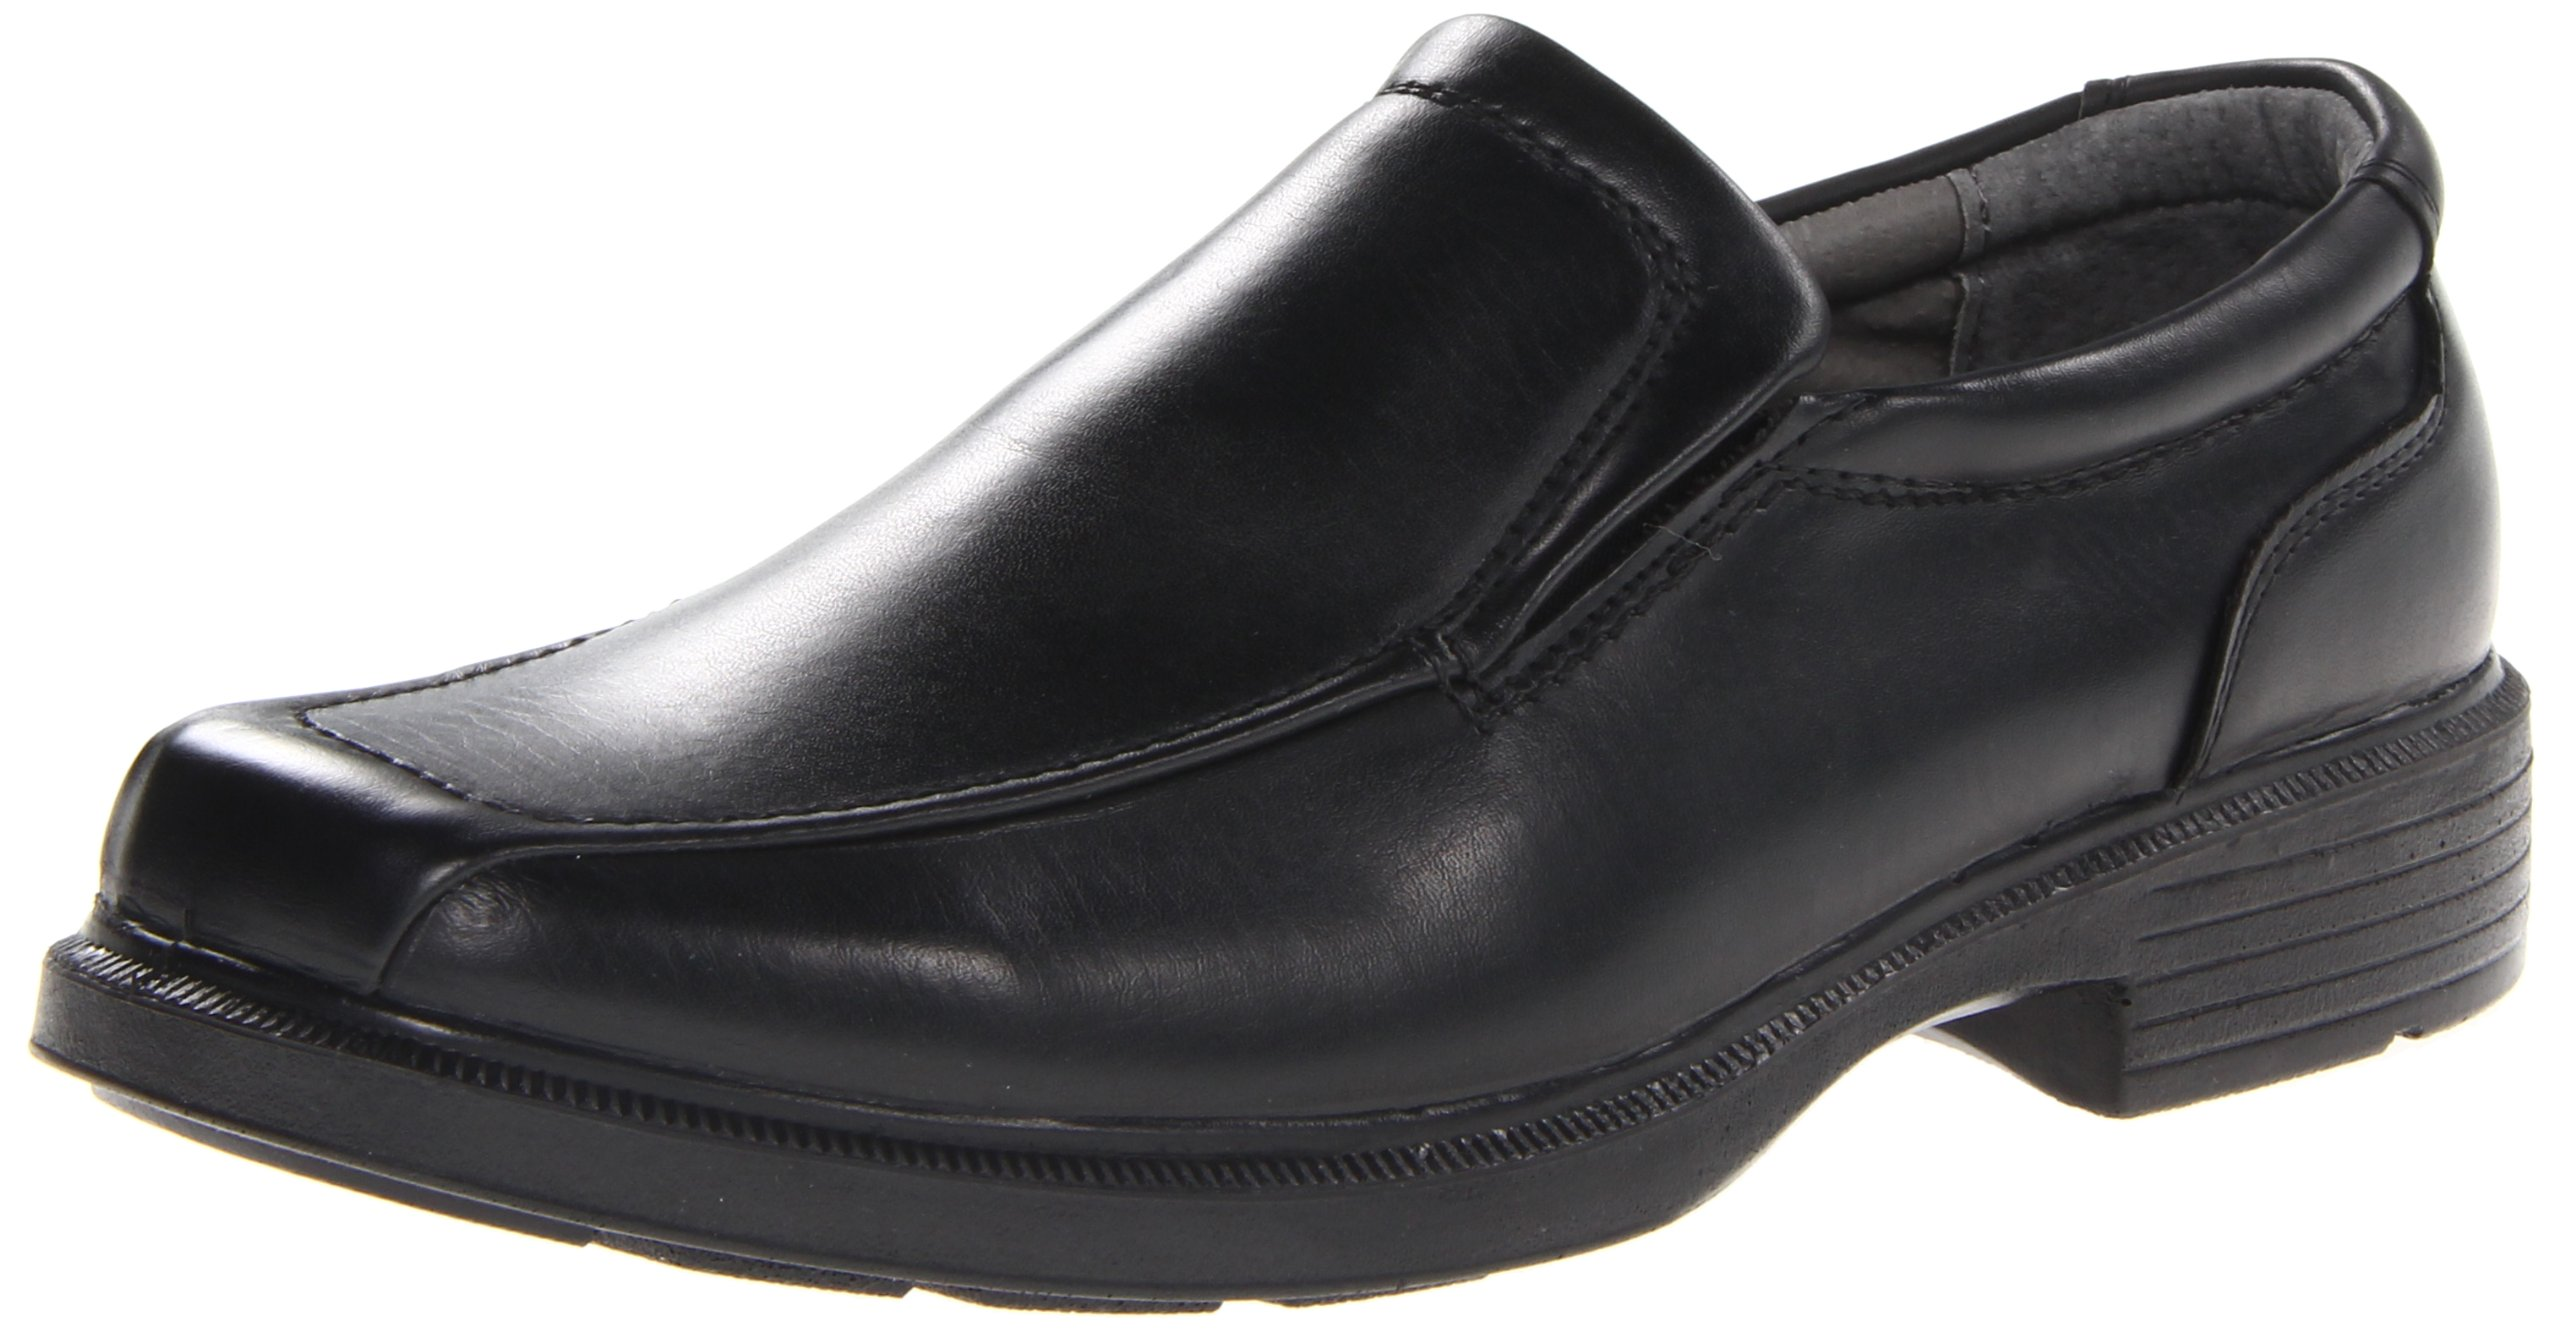 Deer Stags Men's Greenpoint Slip-On Loafer,Black,14 W US by Deer Stags